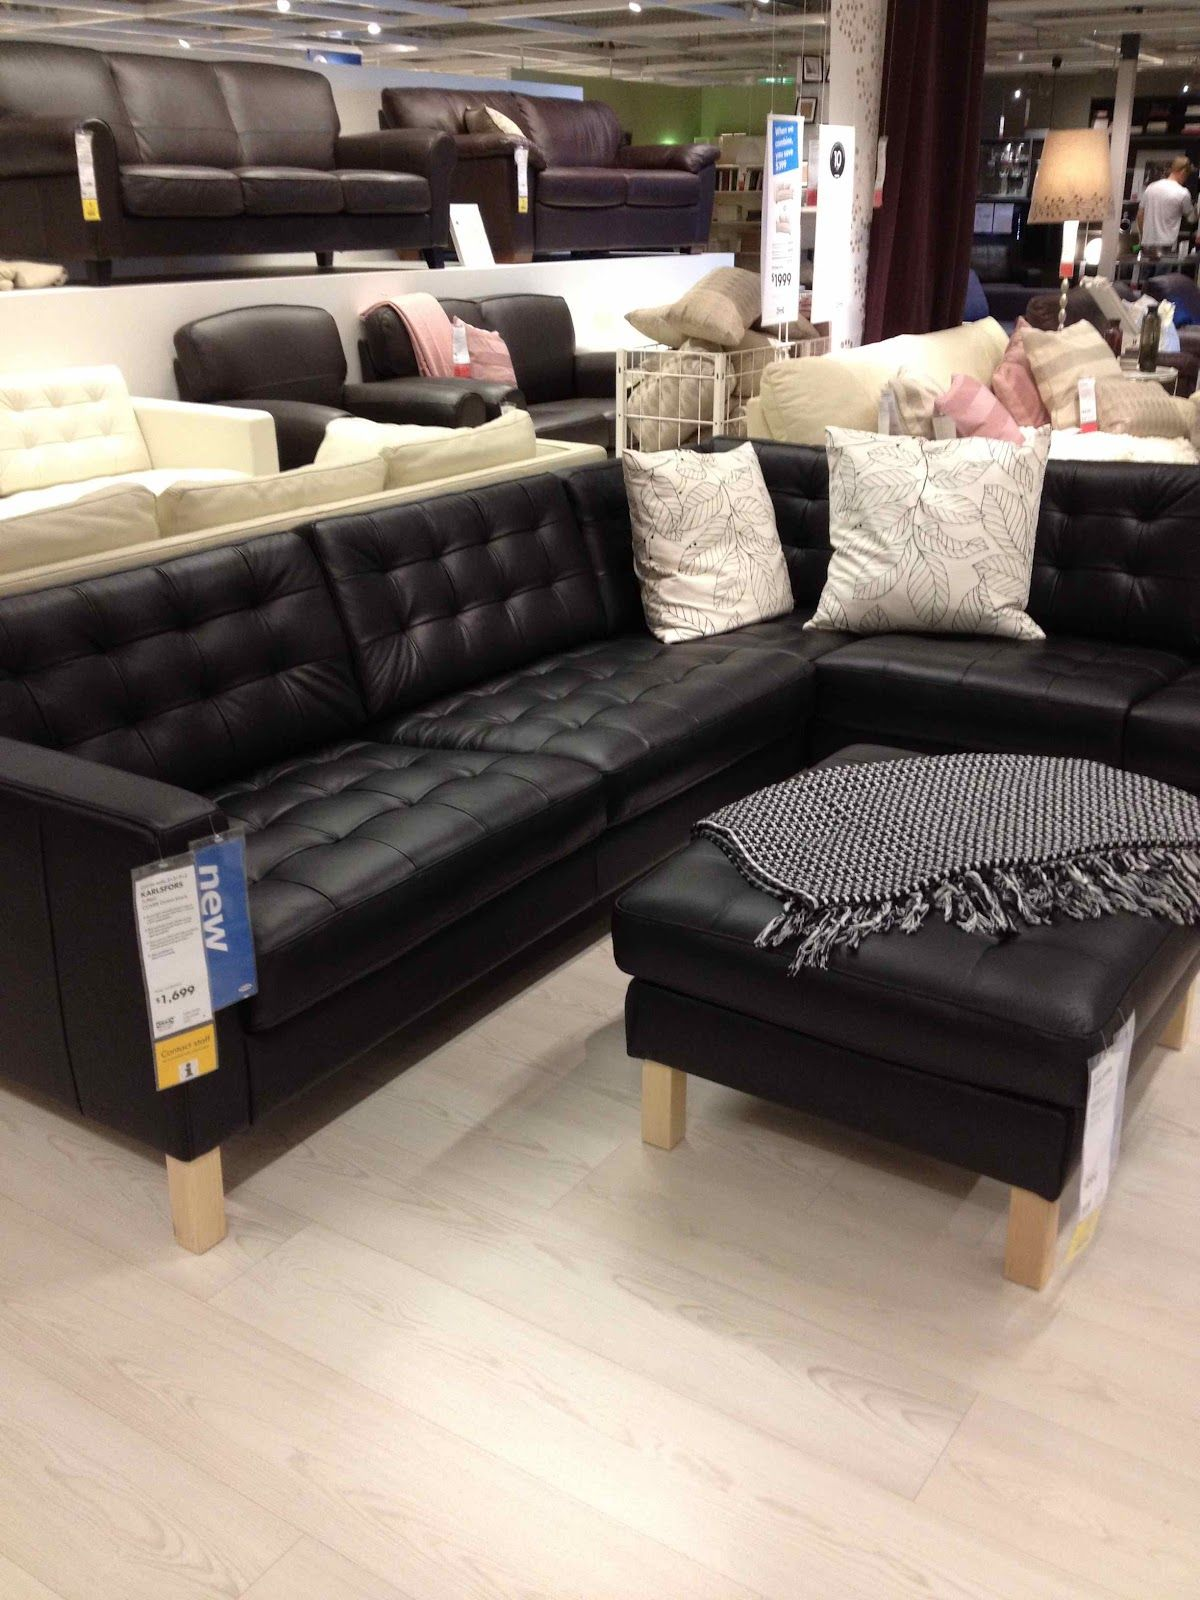 Ikea Karlsfors Black Faux Leather Couch Ikea Leather Sofa Couch Furniture